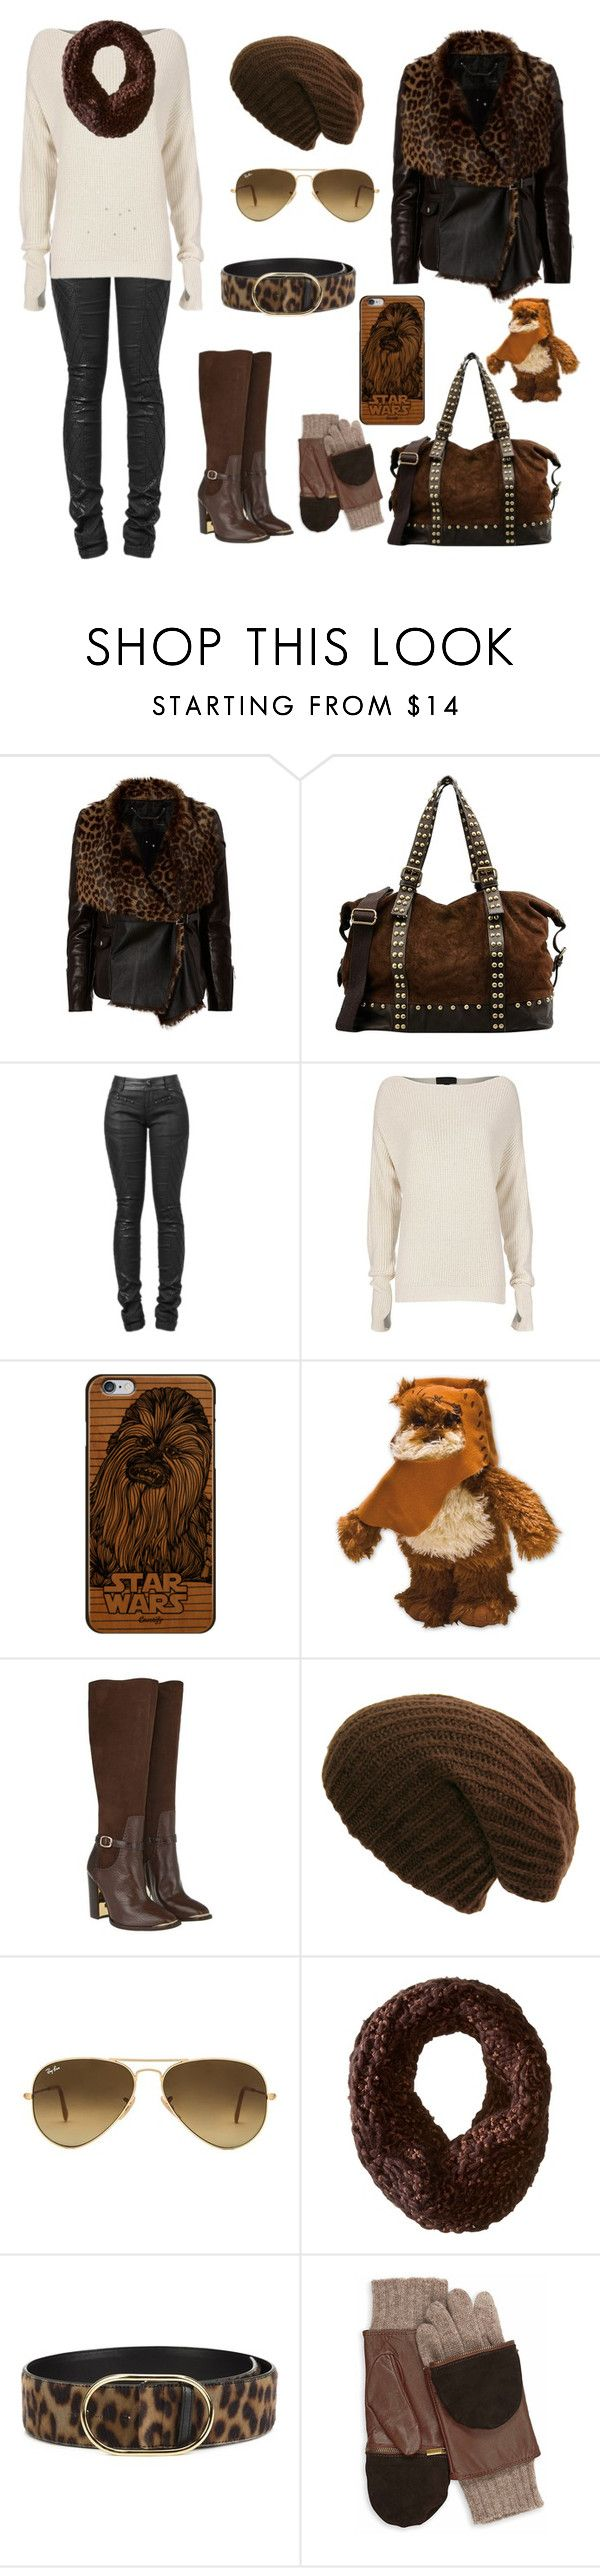 """Untitled #795"" by mentalterrorist on Polyvore featuring Barbara Bui, George J. Love, Exclusive for Intermix, Casetify, Rachel Zoe, Ray-Ban, San Diego Hat Co. and STELLA McCARTNEY"